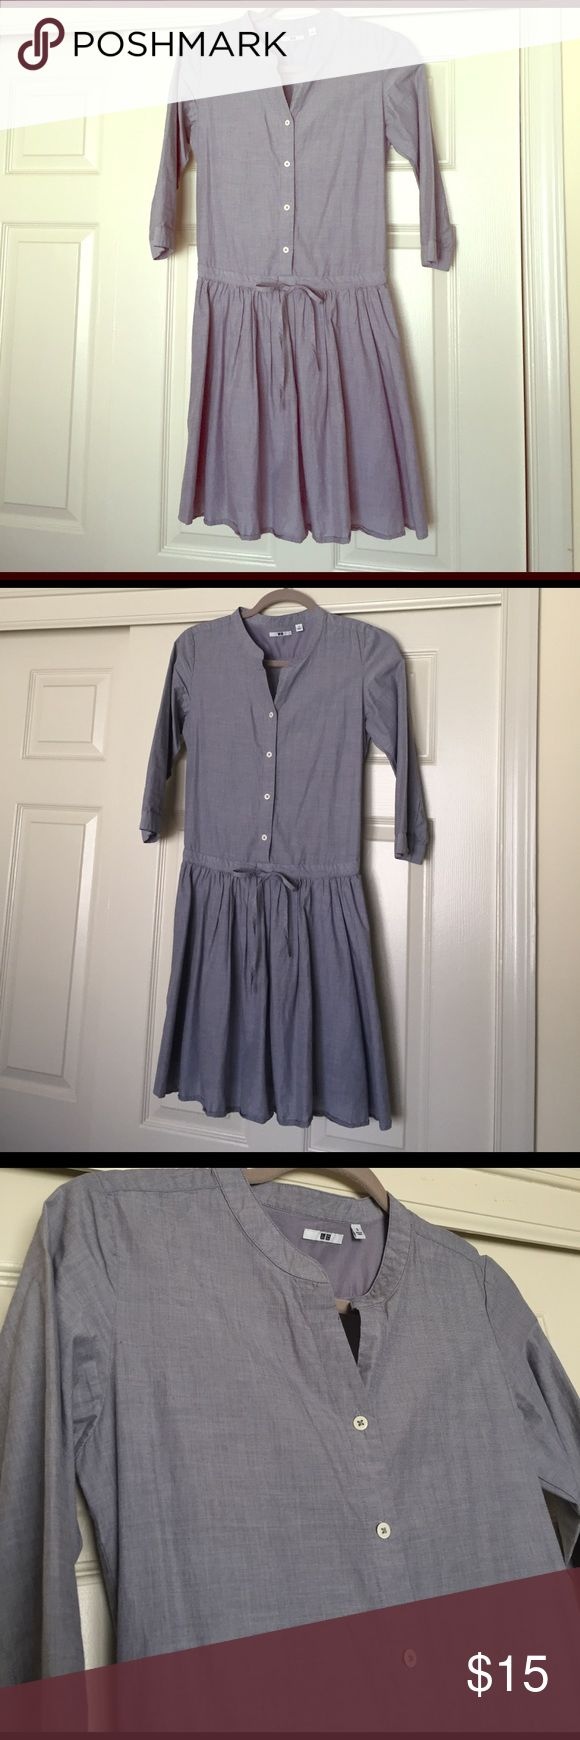 Uniqlo chambray 3/4 sleeve dress EUC. No stains/marks/holes. China collar. 3/4 sleeve length. Button up shirt dress. Waist is adjustable with draw string. Bottom skirt lined - no see through. Perfect for spring! Uniqlo Dresses Midi